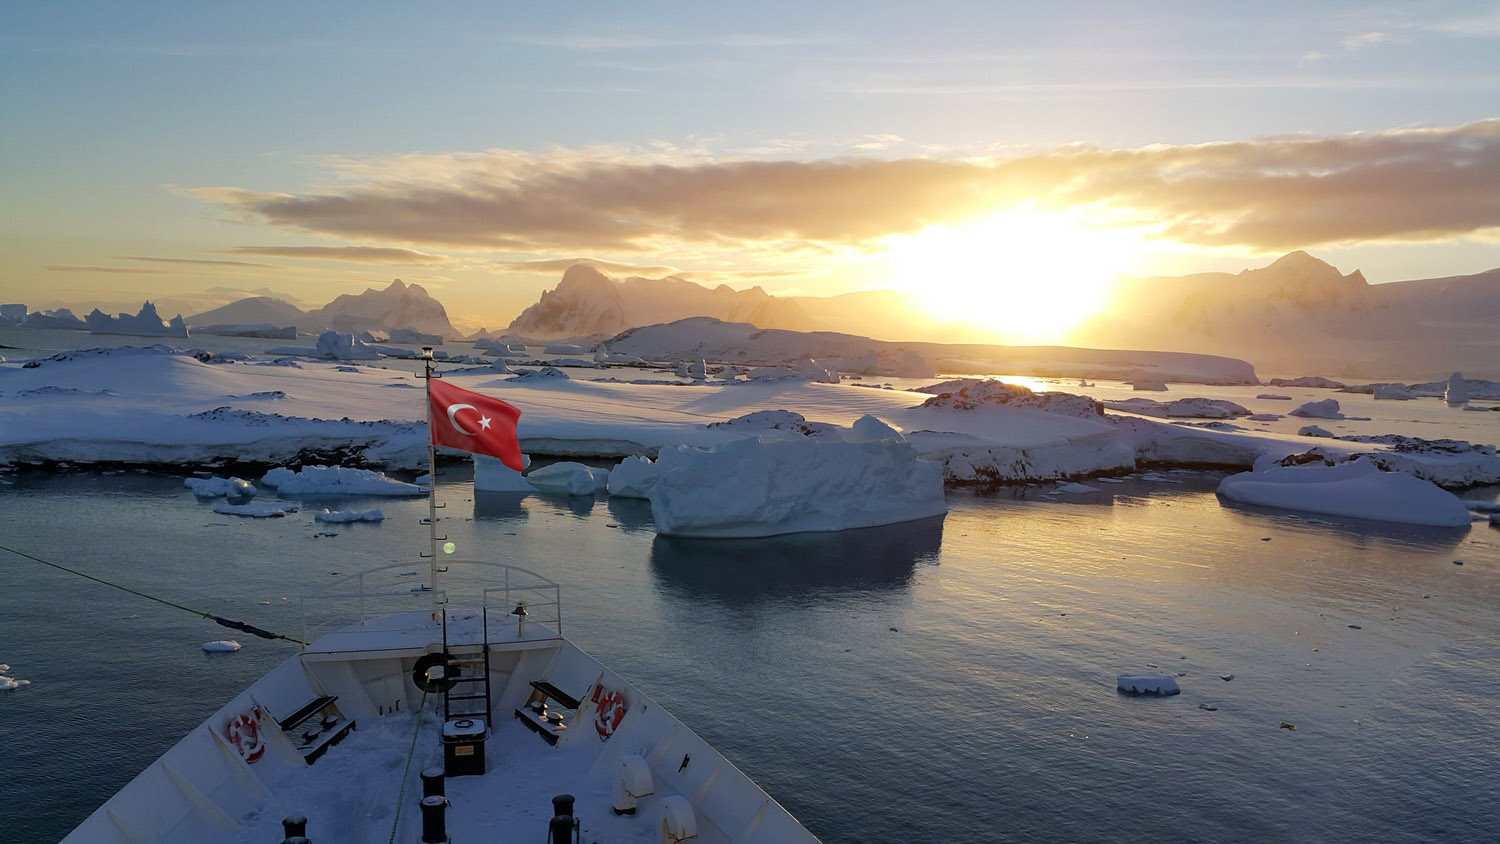 Turk Scientific Base will be laid in Antarctica in 2019